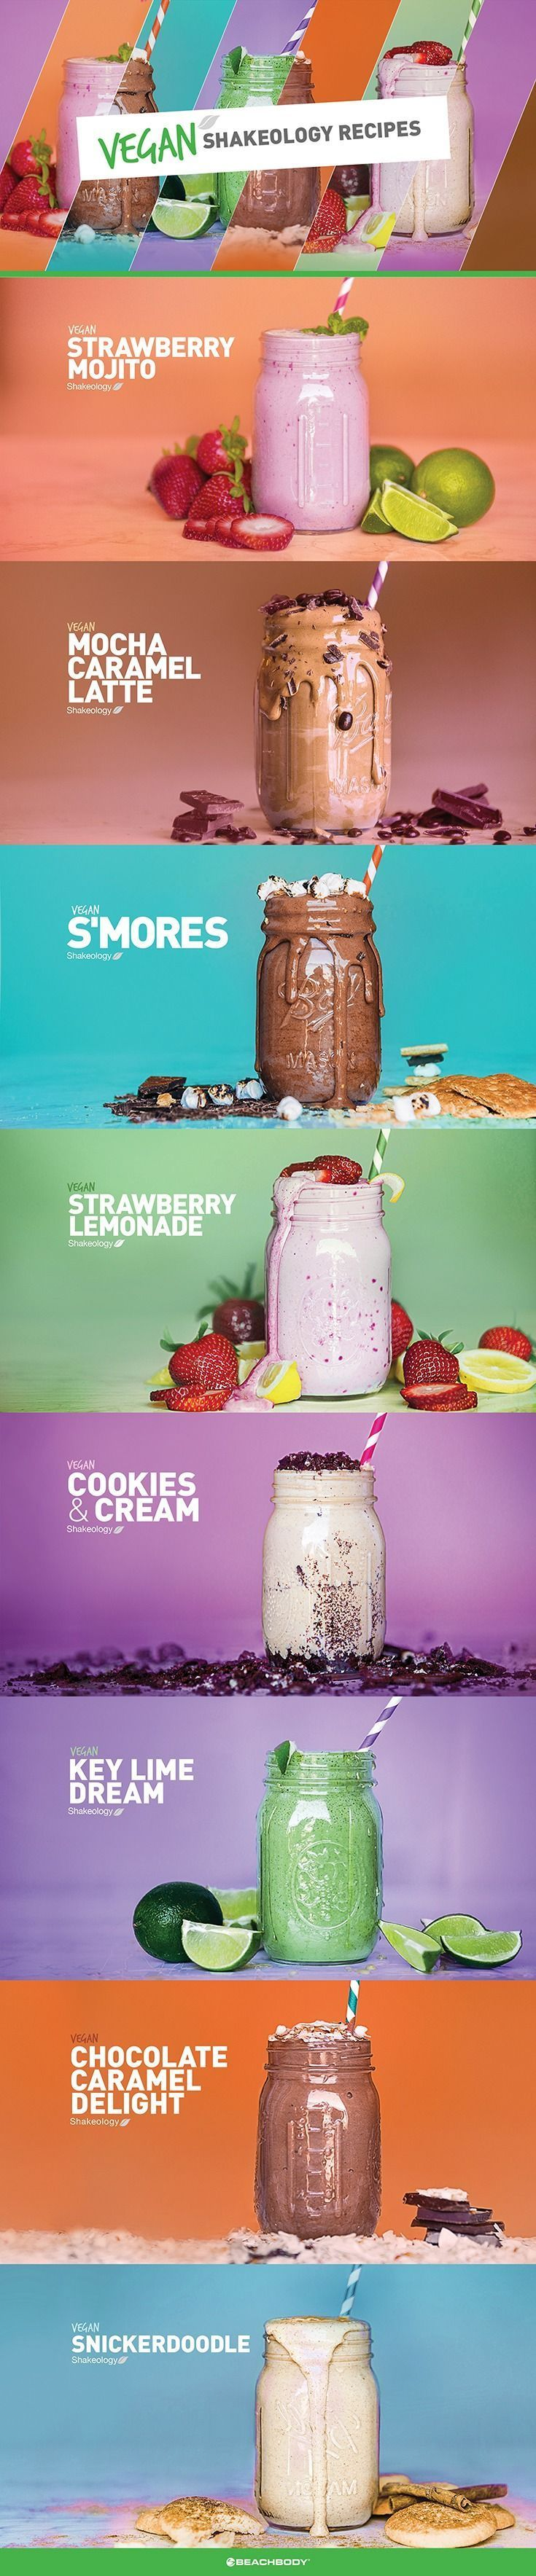 Healthy smoothies recieps | Vanilla Vegan Shakeology and Café Latte Vegan Shakeology are now available! Here's 8 of your favorite Shakeology recipes now dairy-free! // healthy recipes // shakeology recipe // smoothies // vegan recipe // dairy-free // drinks // beverages // snacks // desserts // high protein // Beachbody //